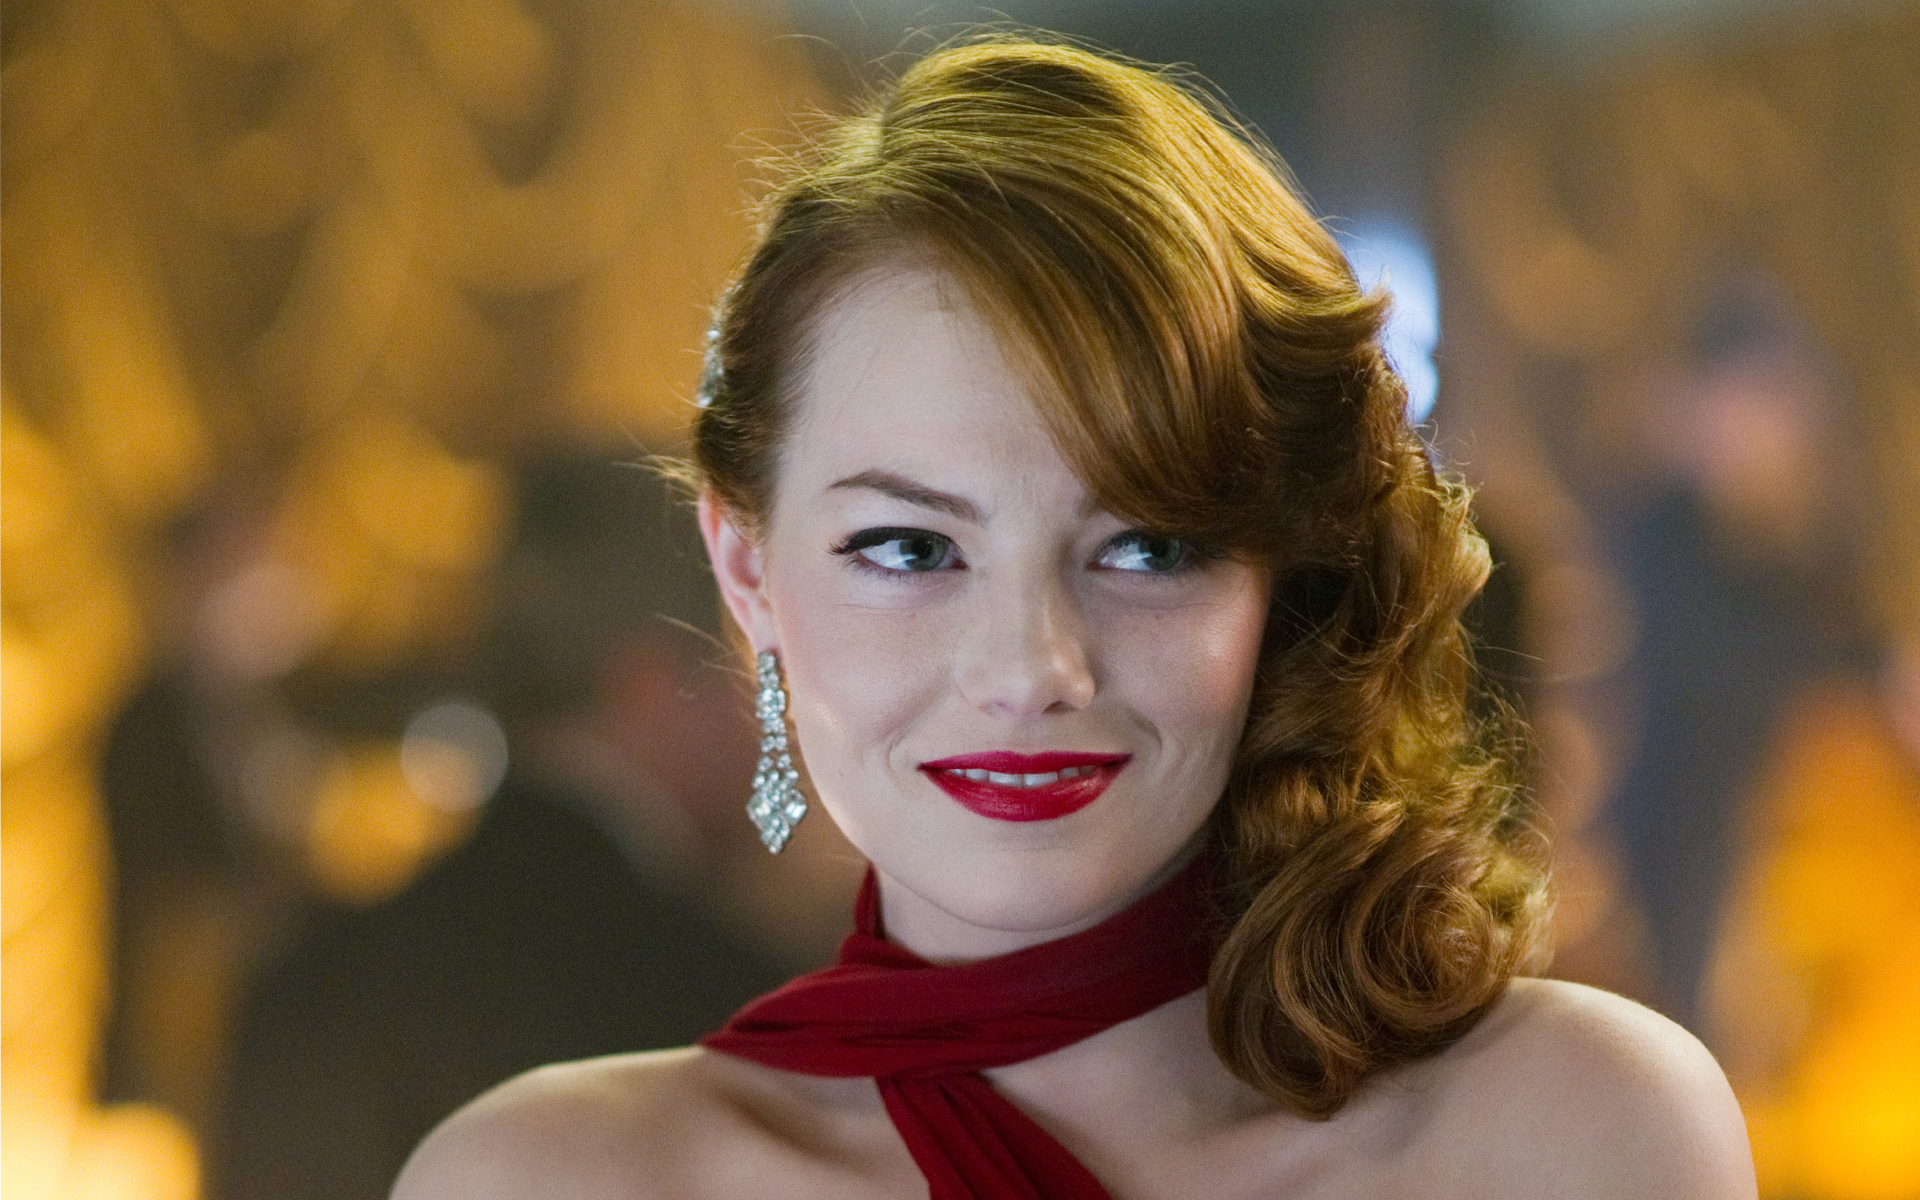 beautiful emma stone fantastic smile face with hot look still free mobile hd desktop background wallpaper